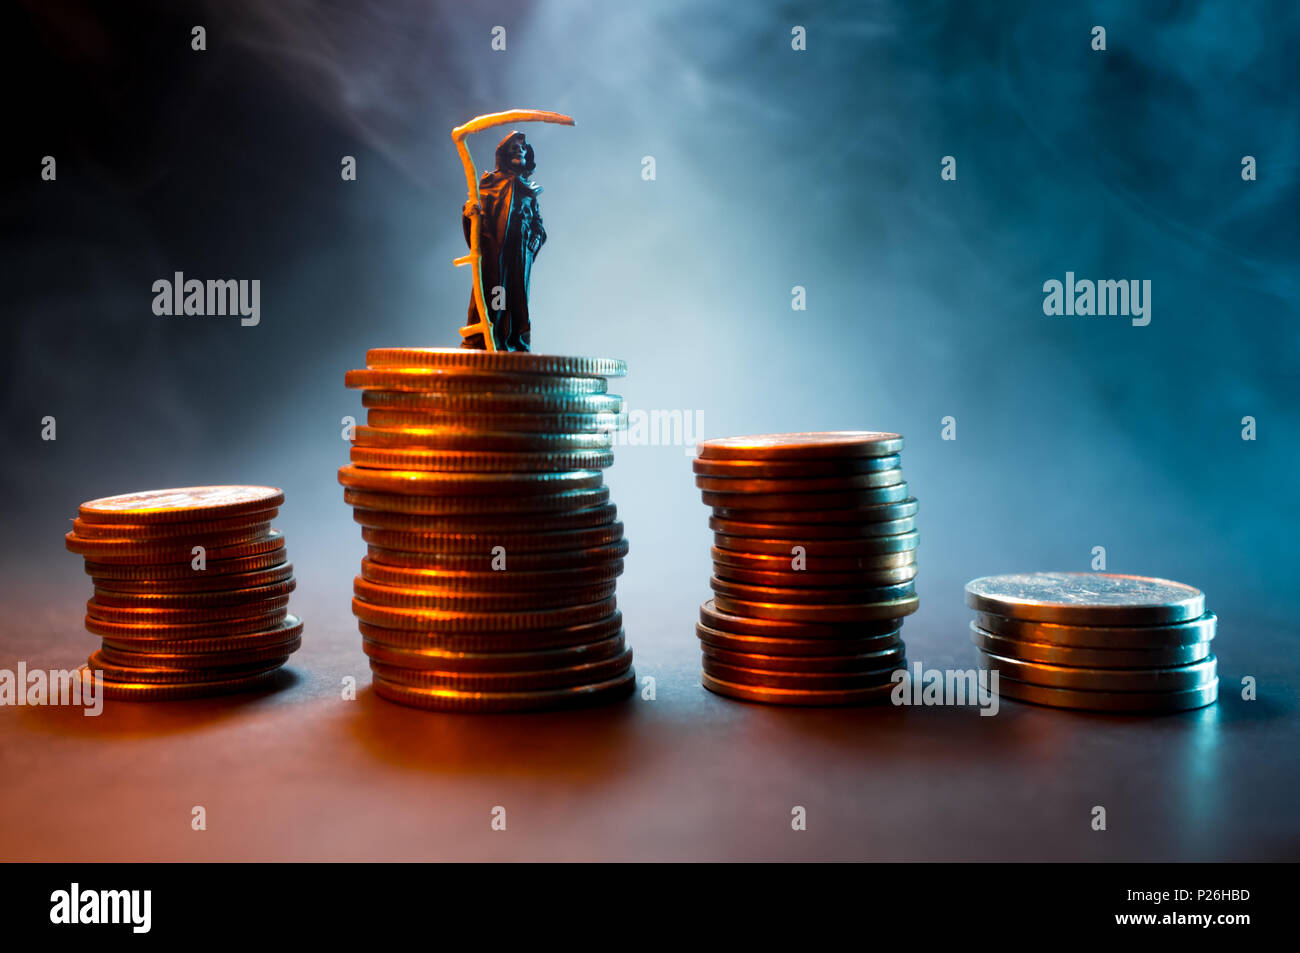 Grim reaper with pile of cash symbolizing the evil of money - Stock Image